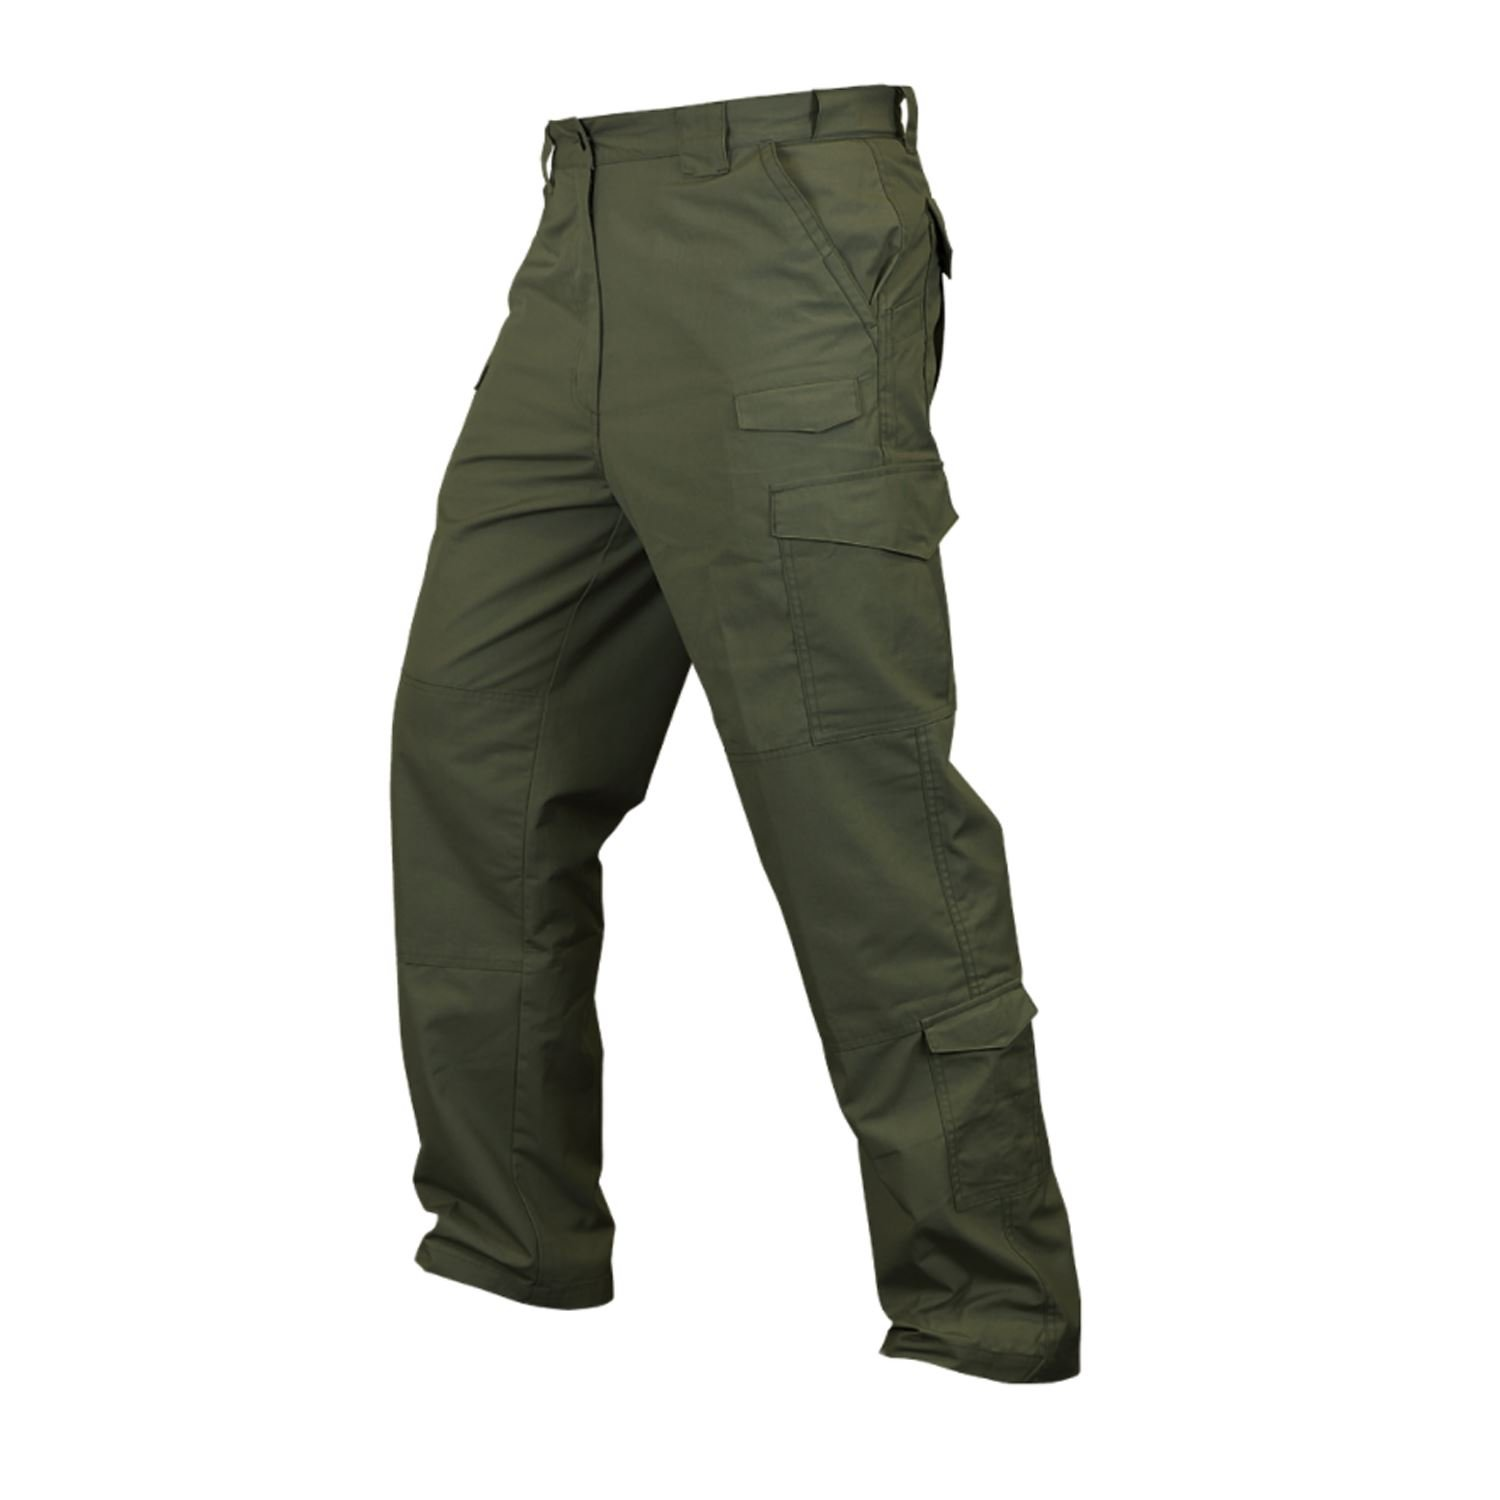 CONDOR 608: SENTINEL TACTICAL PANTS: OD GREEN